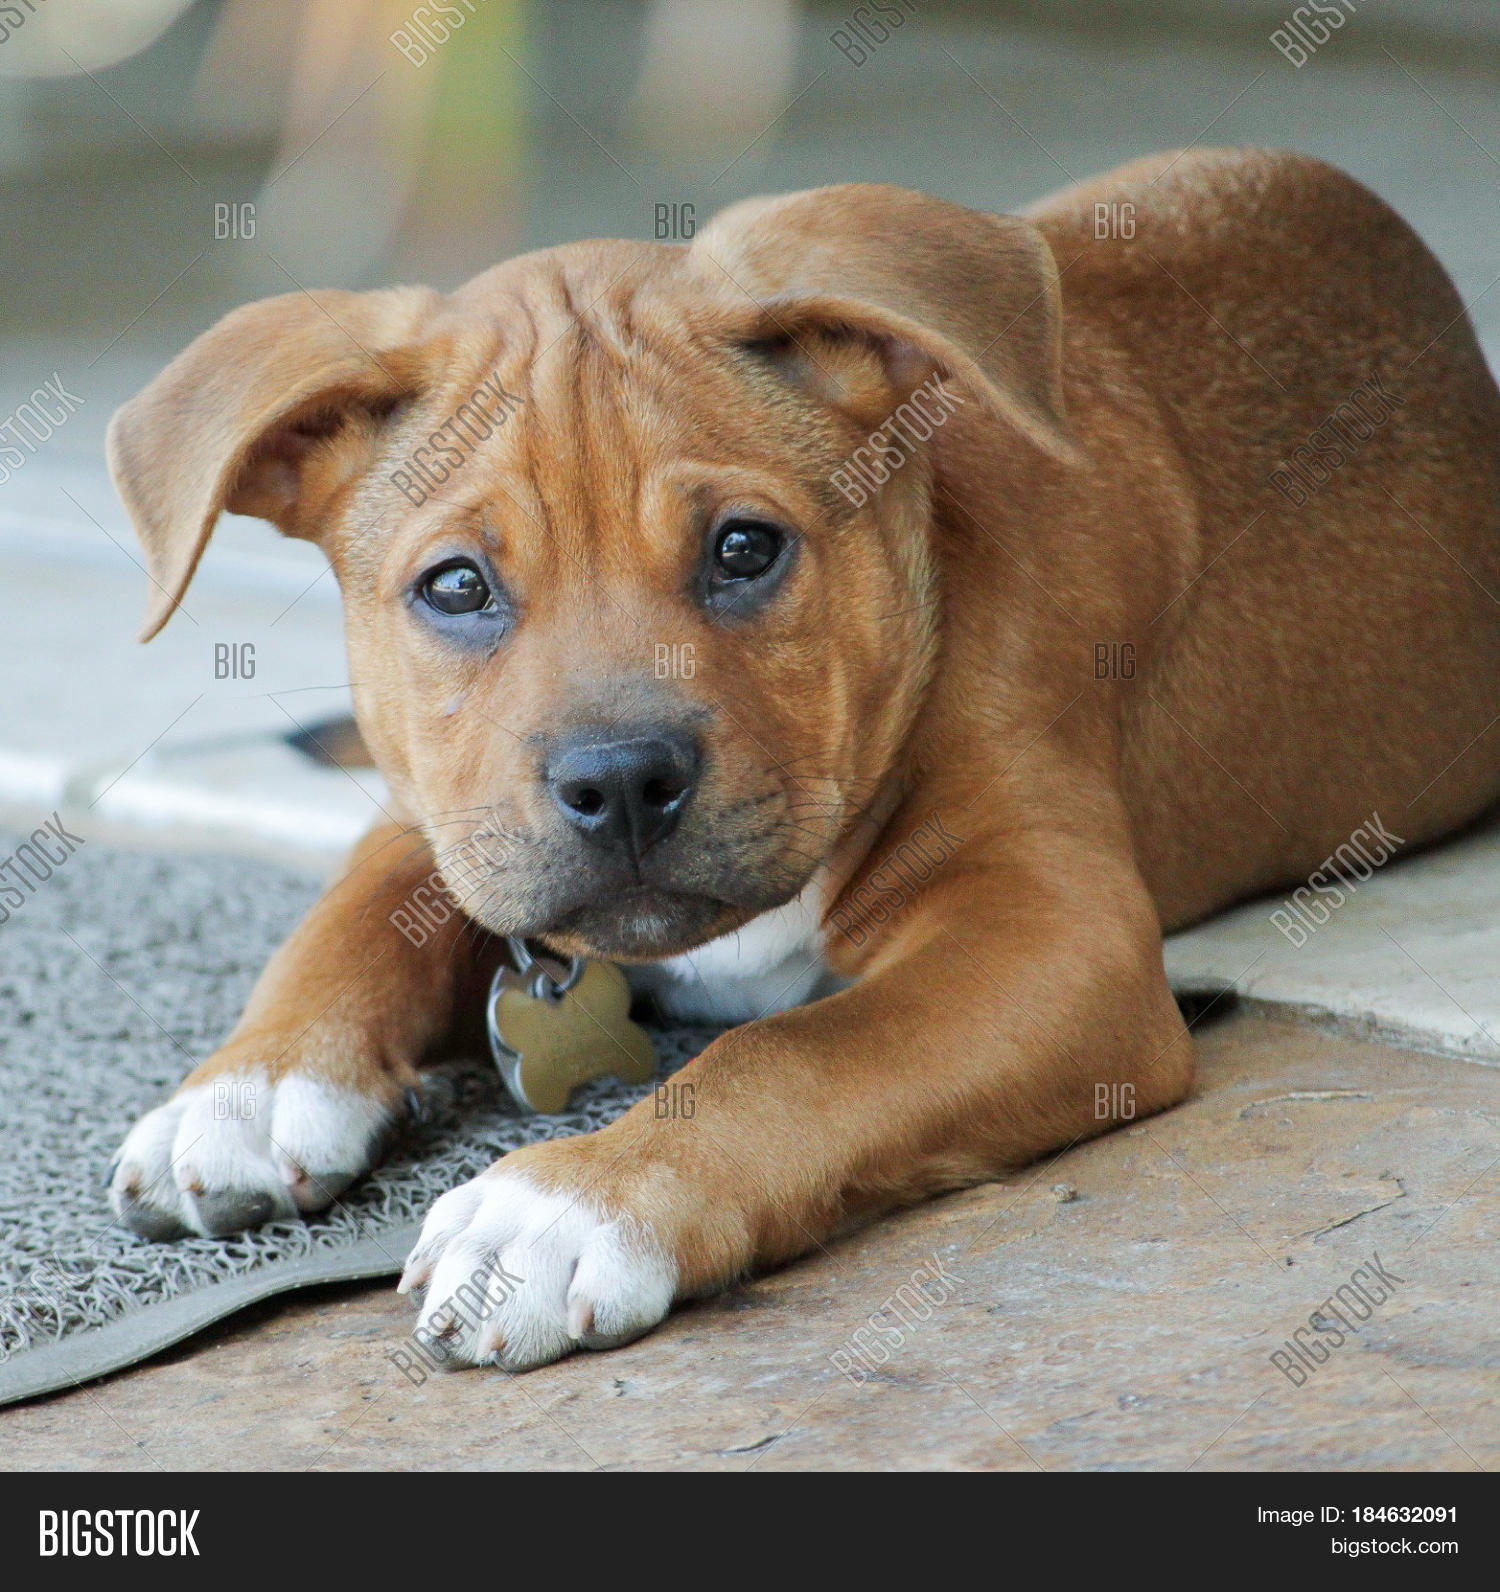 Adorable Puppy Boxer Image Photo Free Trial Bigstock